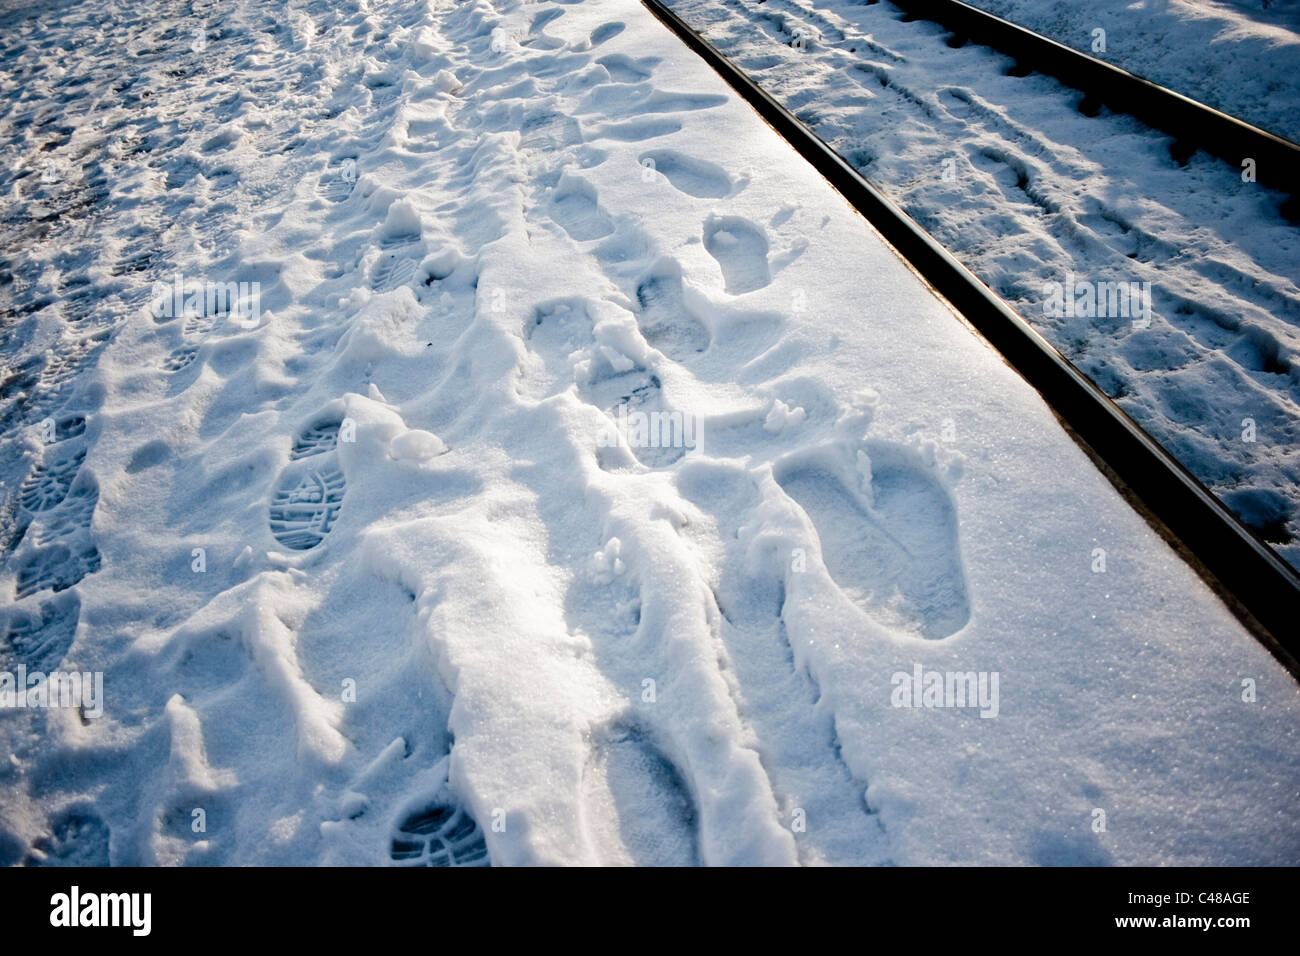 Evidence of a large number of passengers in the snow of a railway platform. - Stock Image